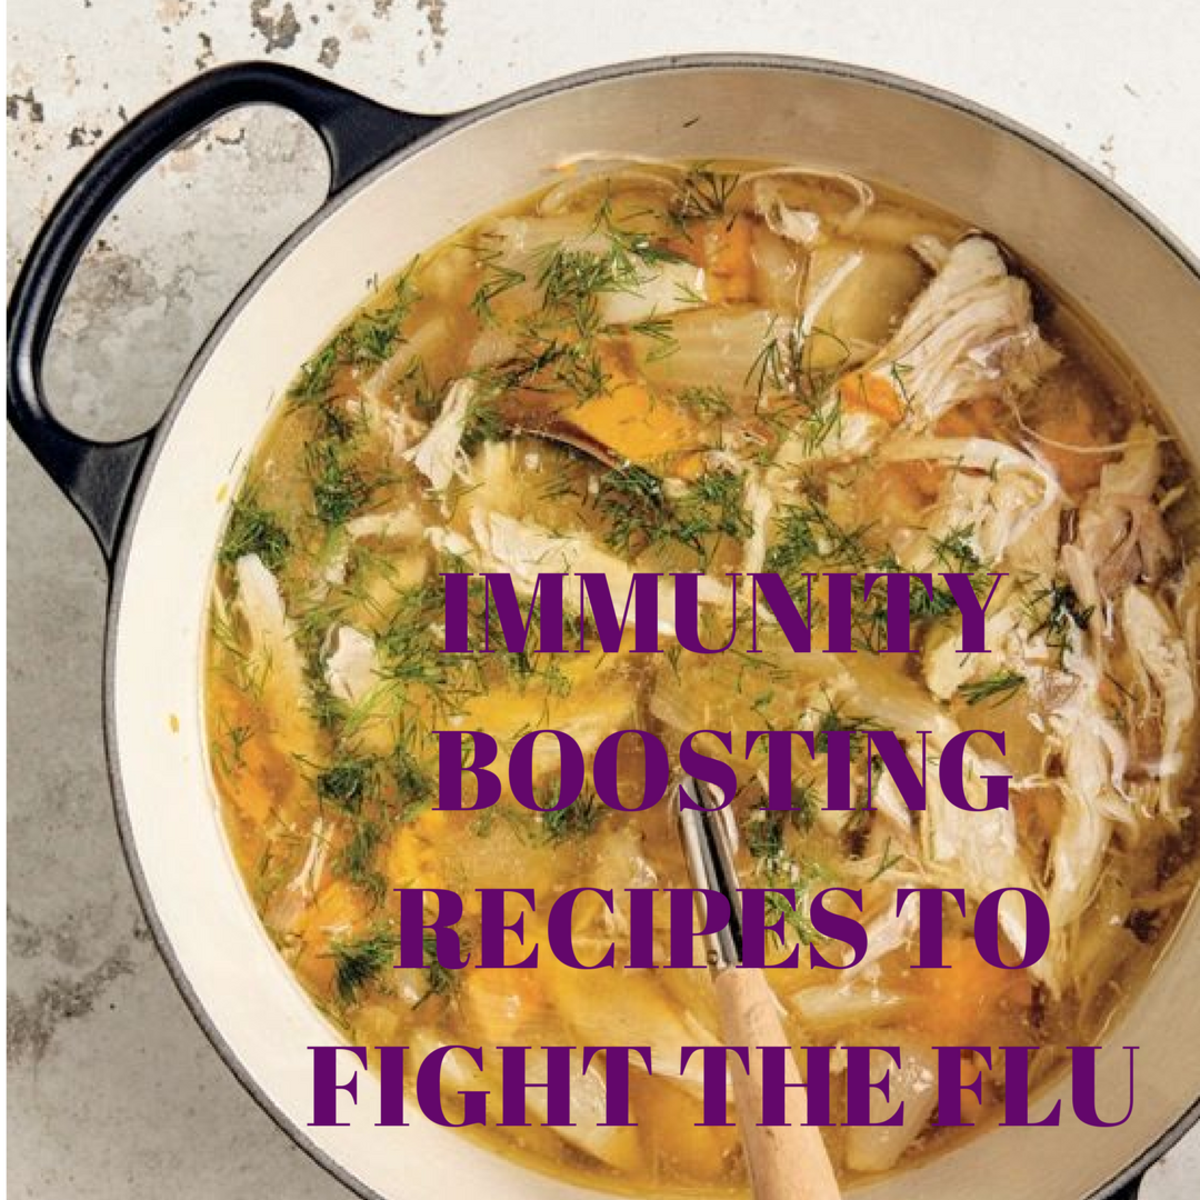 IMMUNITY BOOSTING RECIPES TO FIGHT THE FLU